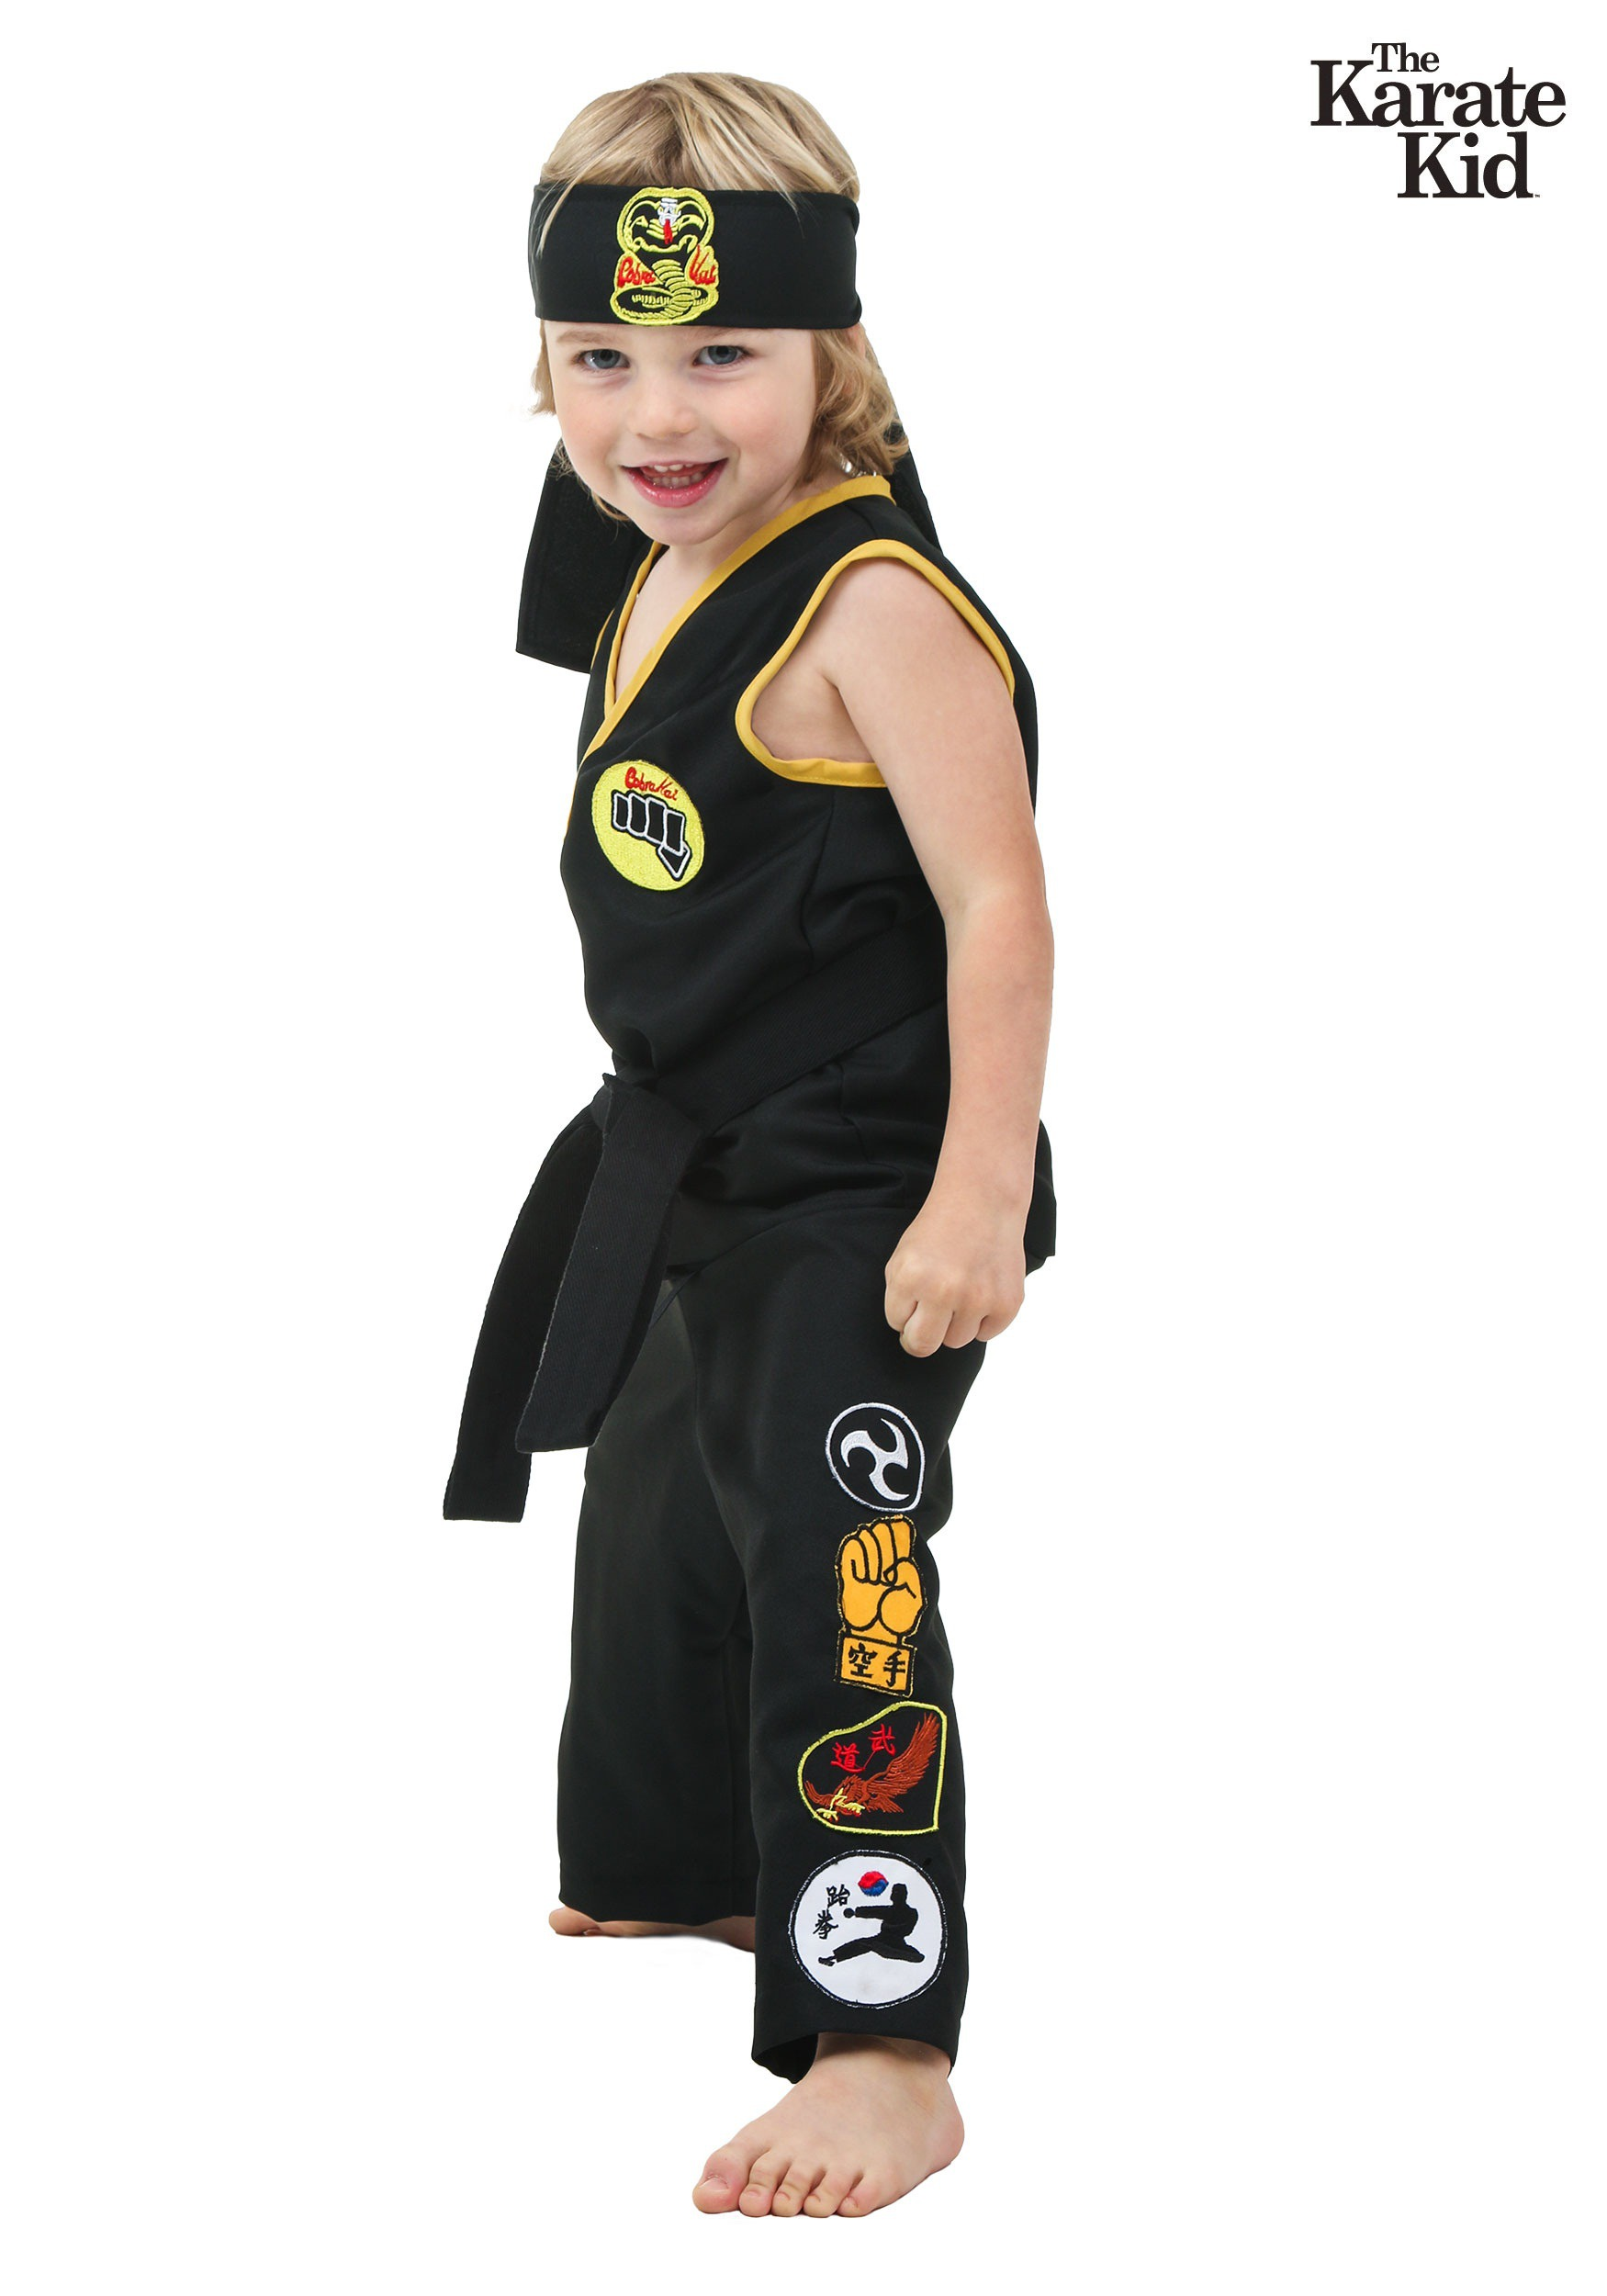 Toddler Cobra Kai Costume From The Karate Kid